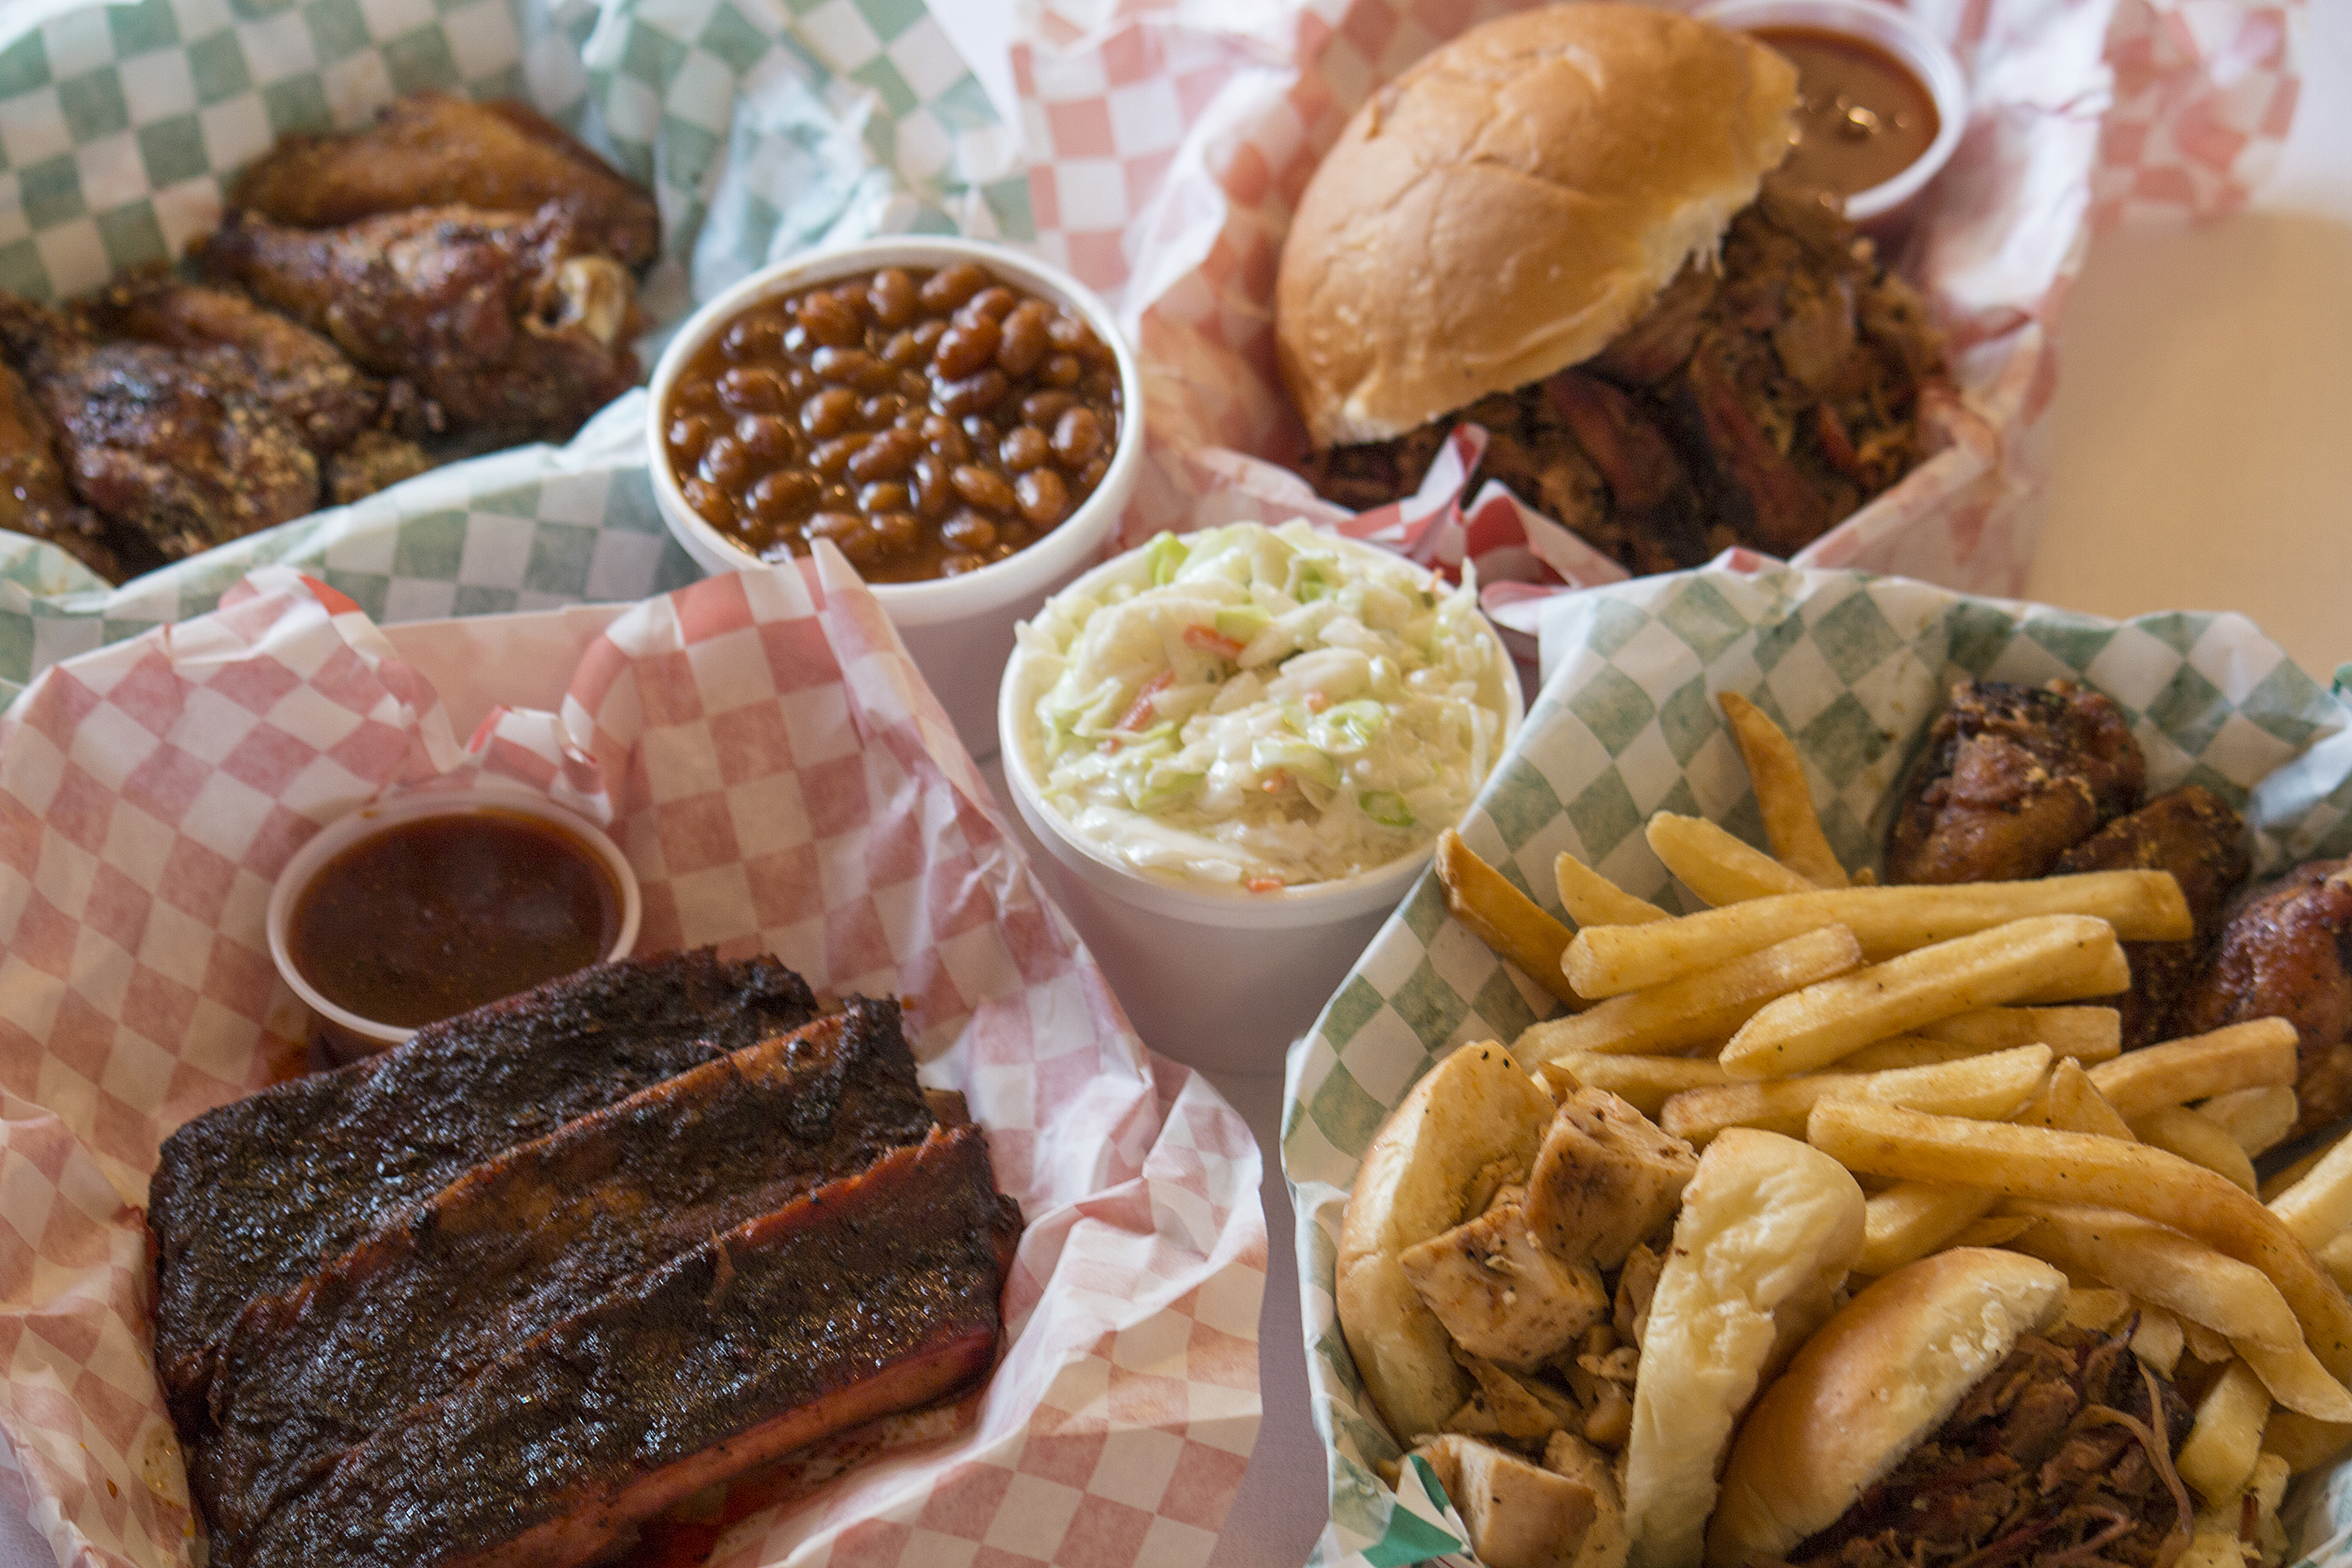 Midwest BBQ & Creamery